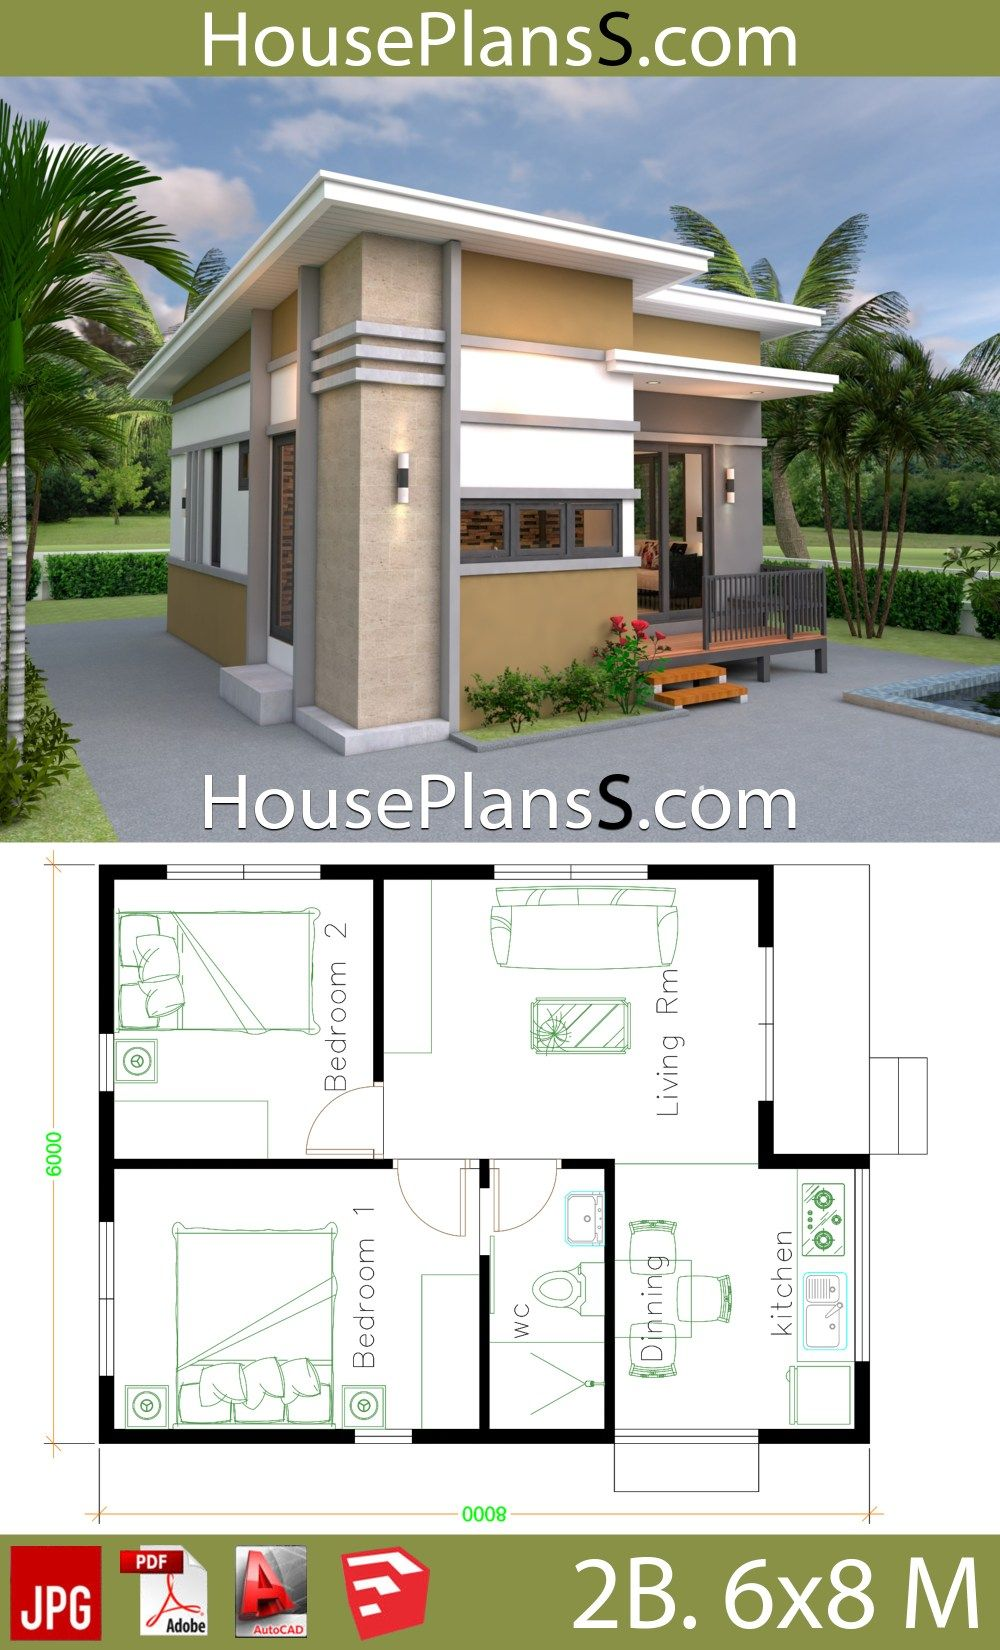 Small House Design Plans 6x8 With 2 Bedrooms House Plans 3d Small House Design Small House Design Plans Dream House Plans